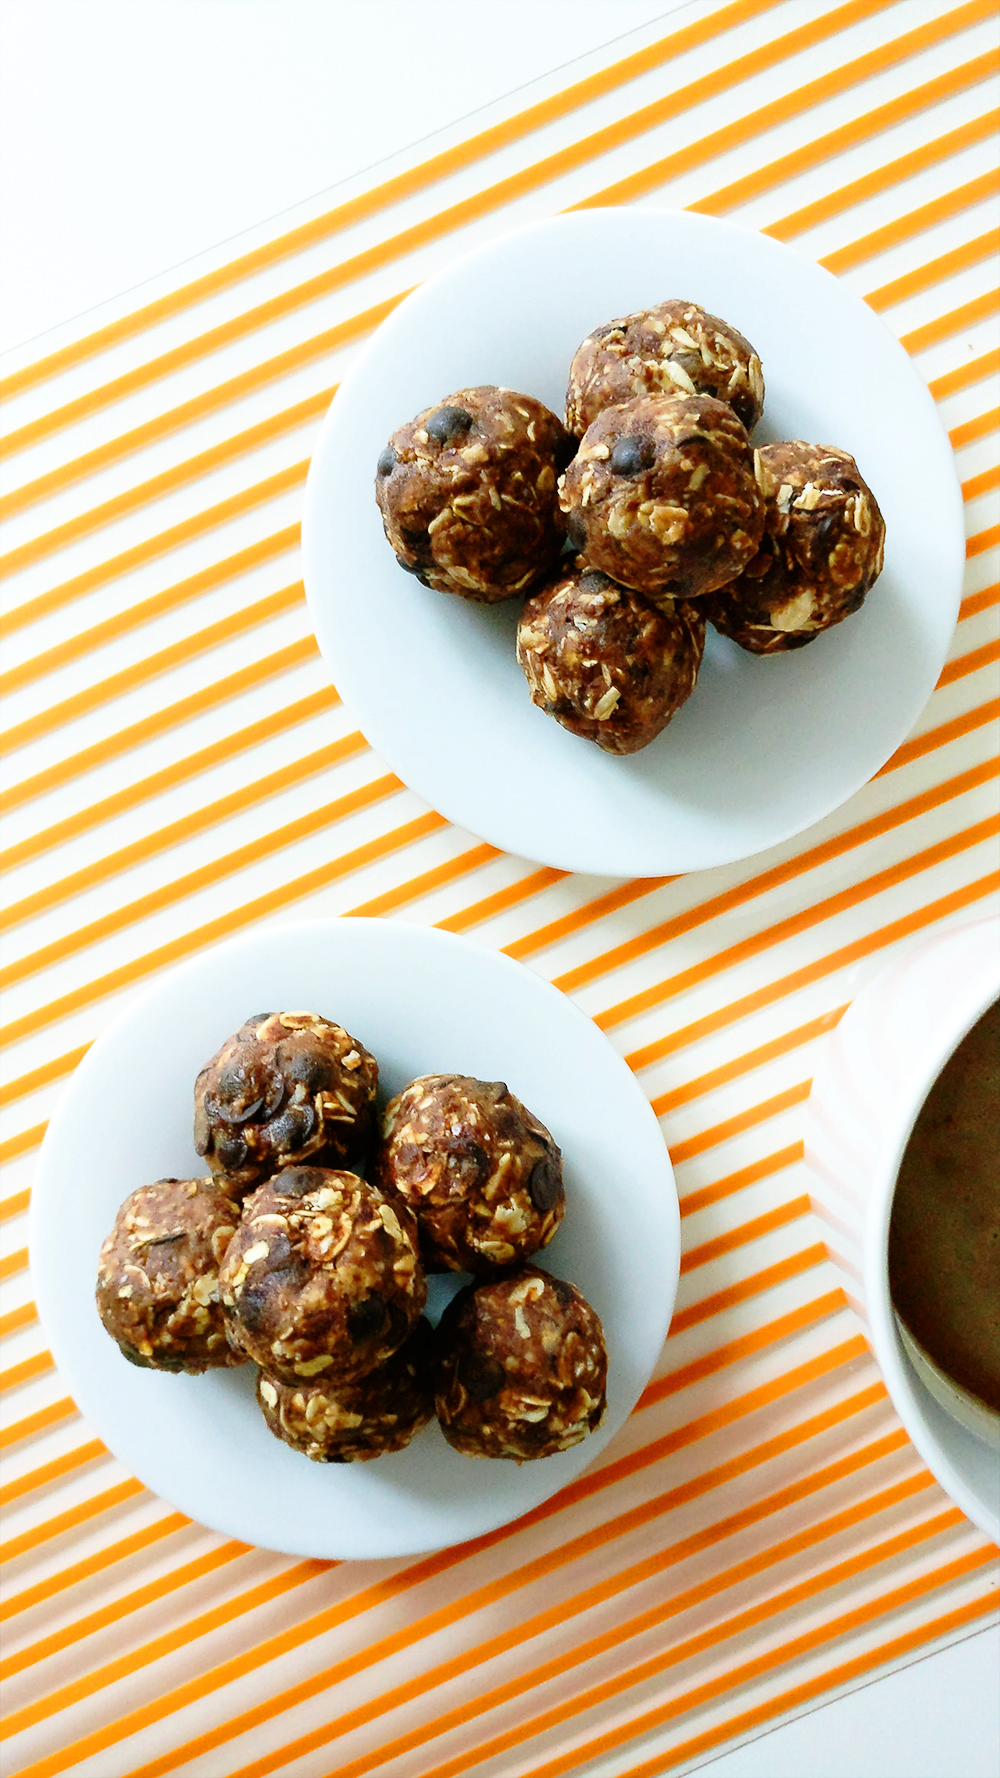 Peanut butter chocolate energy bites with oats | Aliz's Wonderland #energybite #snack #peanutbutter